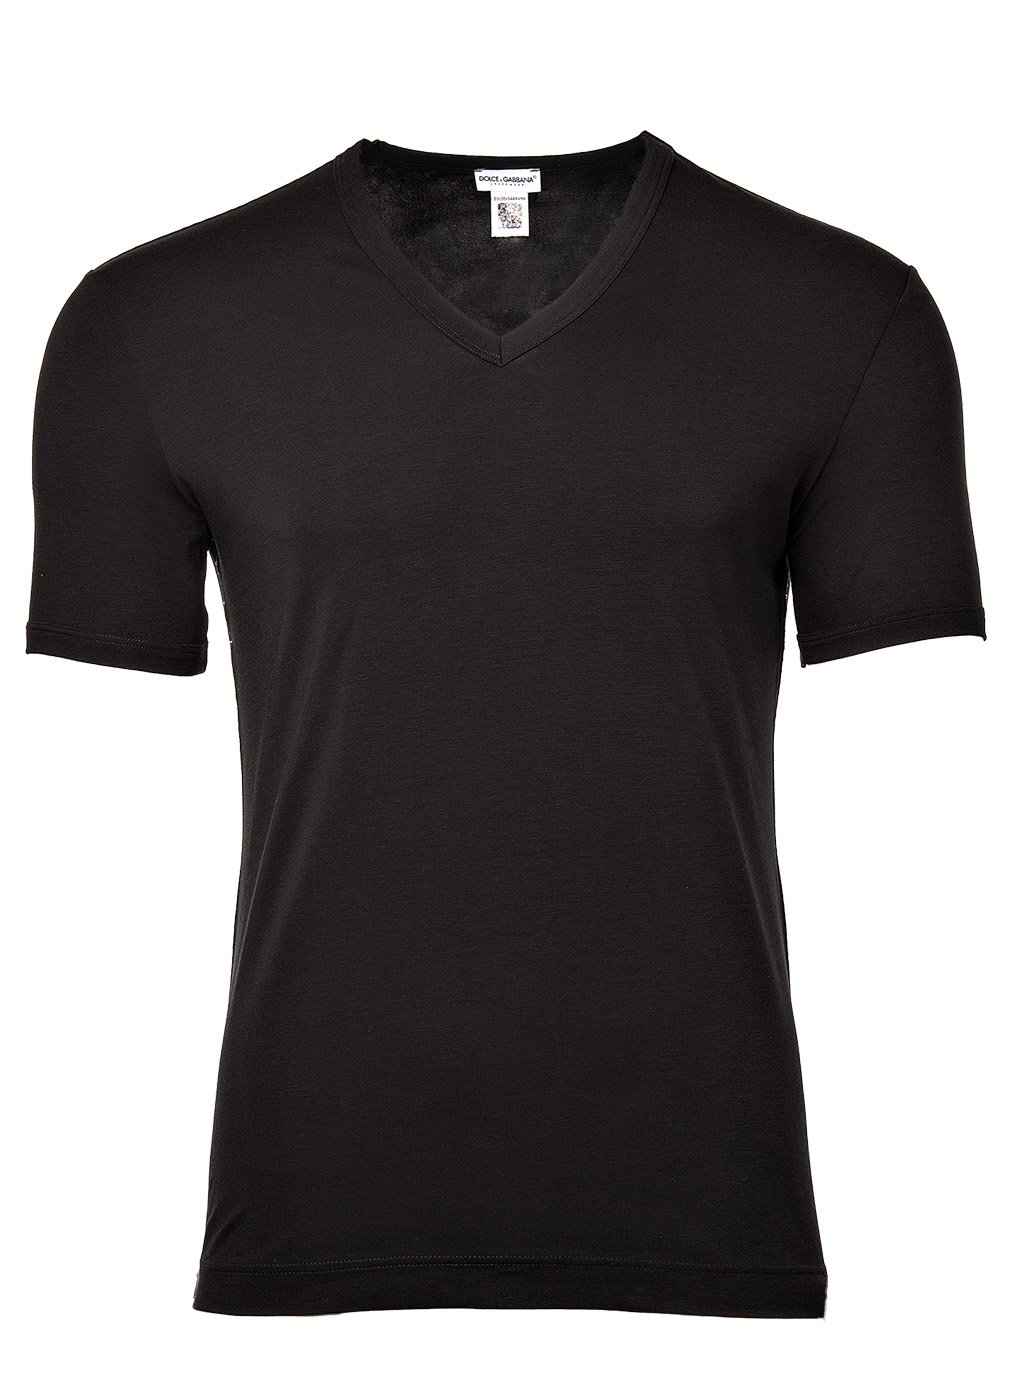 Dolce & Gabbana  Men's Tailoring V-Neck T-Shirt Black 5